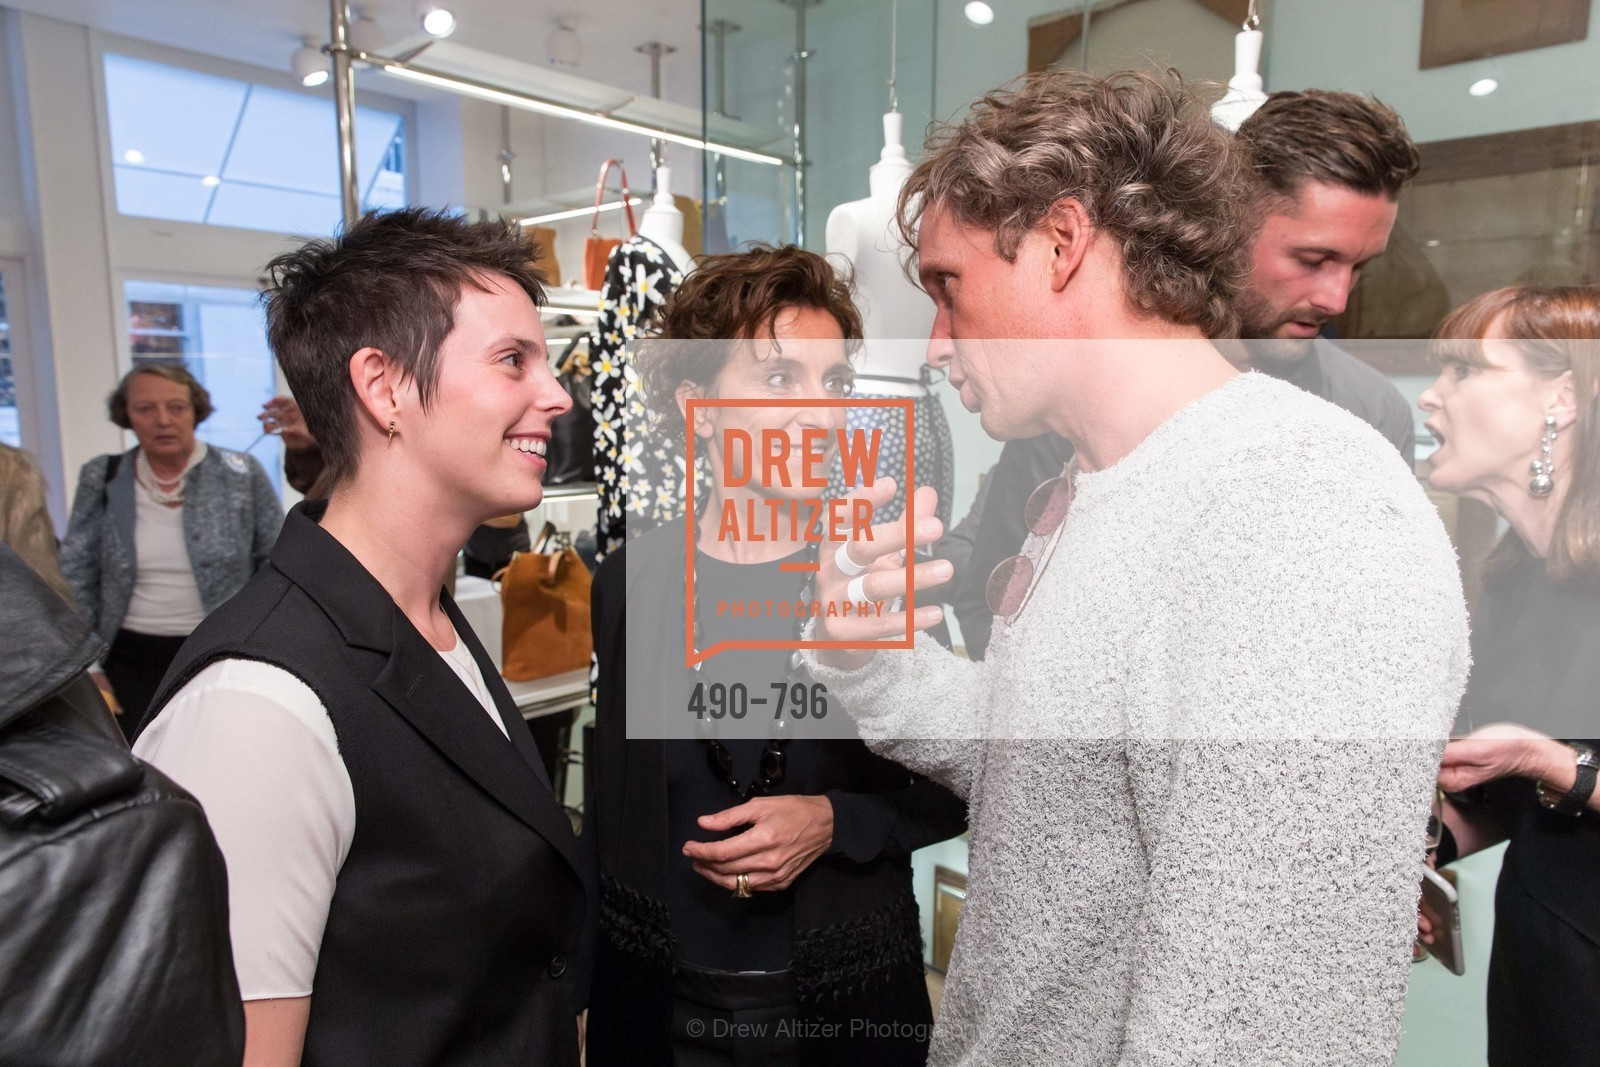 Jessica Silverman, Monica Voltolina, Yves Behar, MAISON MARGIELA San Francisco Boutique Grand Opening Event, US, April 24th, 2015,Drew Altizer, Drew Altizer Photography, full-service event agency, private events, San Francisco photographer, photographer California